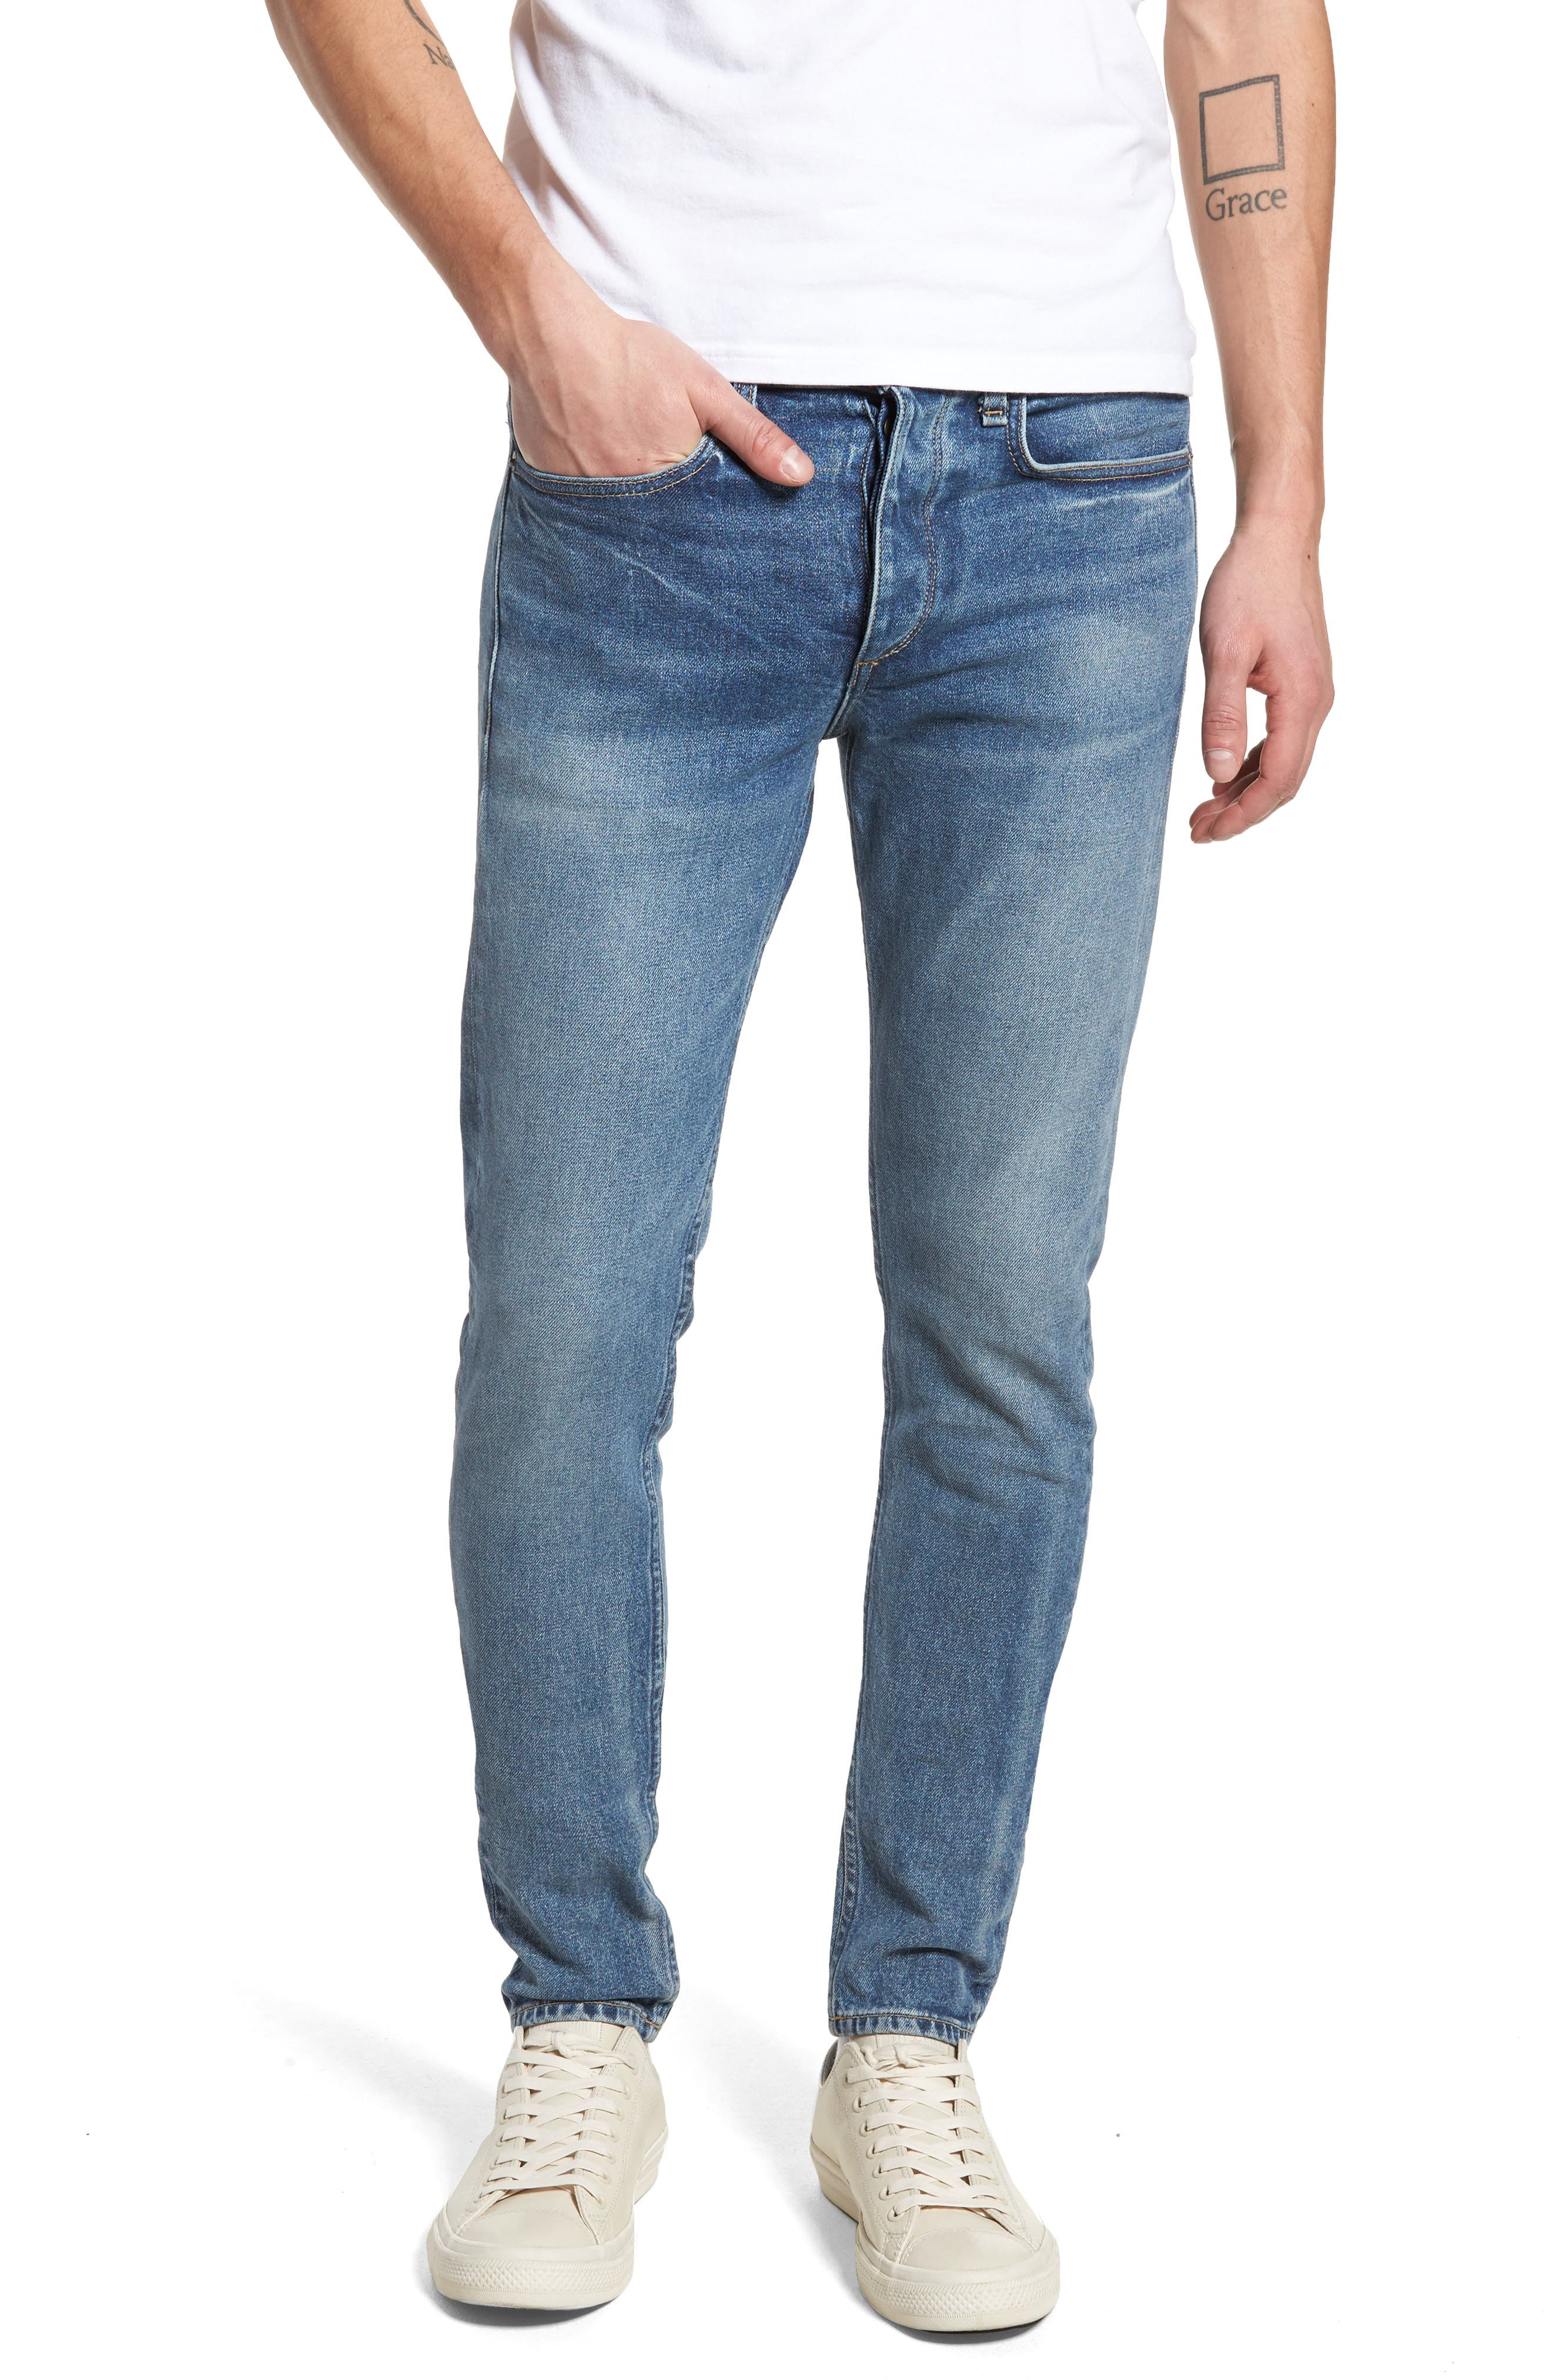 Fit 1 Skinny Fit Jeans,                             Main thumbnail 1, color,                             Brighton